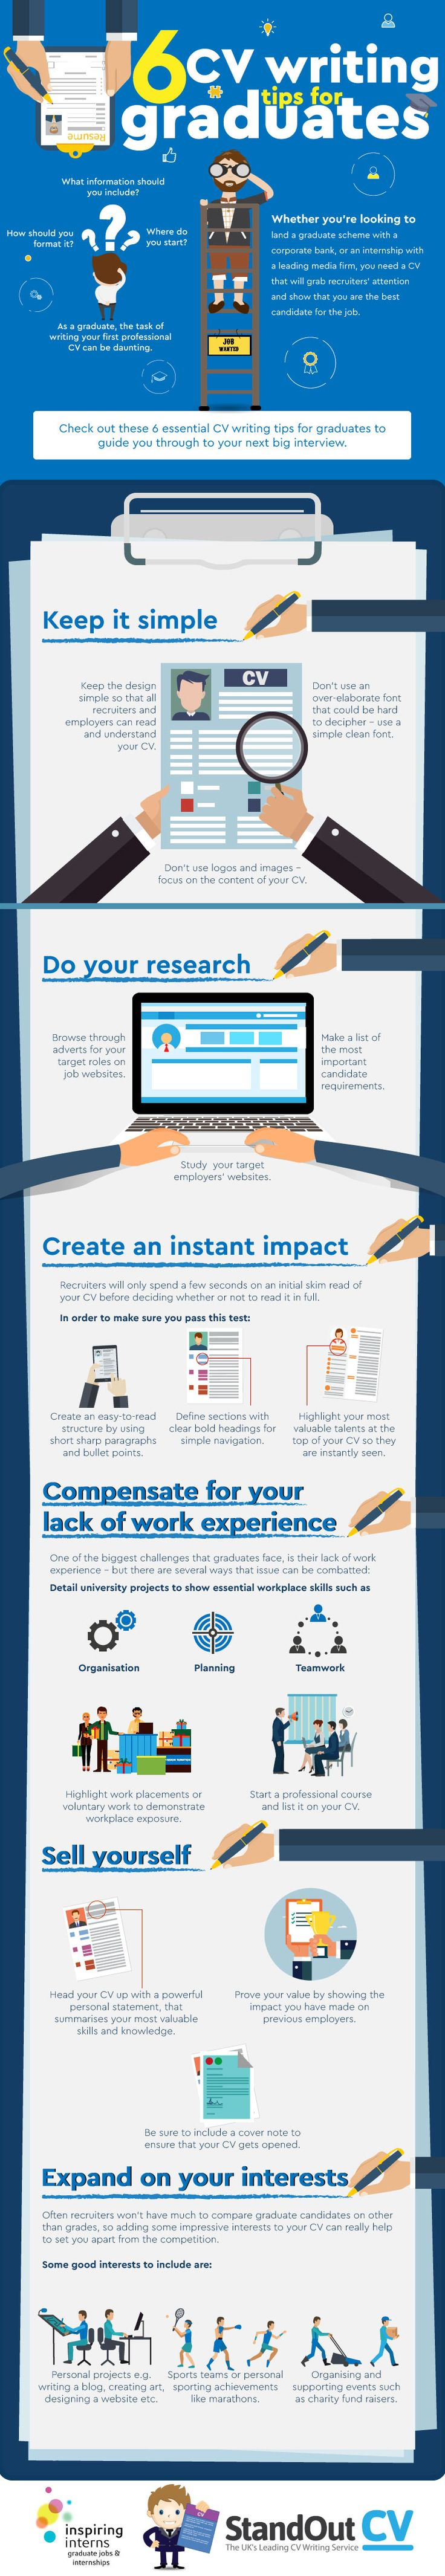 6 cv writing tips for graduates infographic